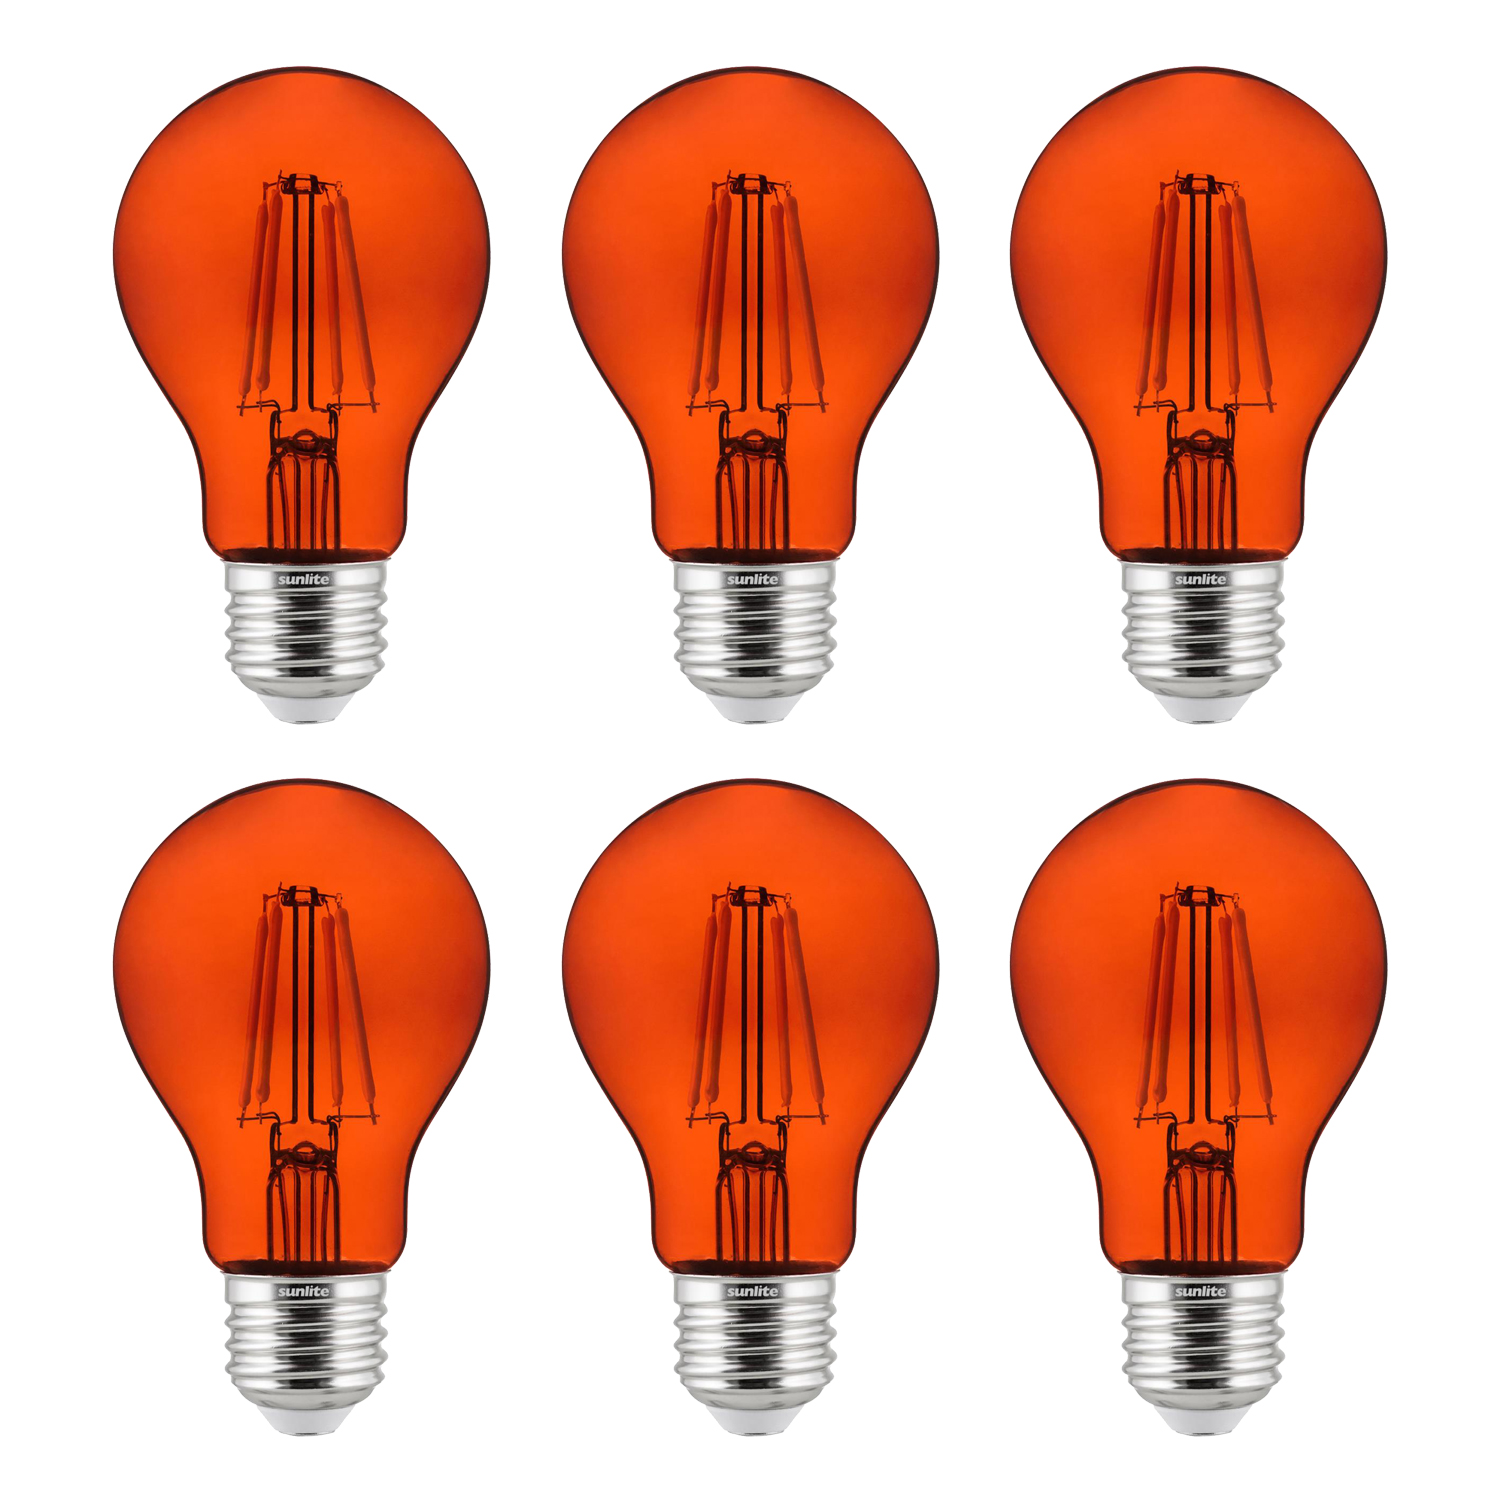 6-Pack Sunlite LED Transparent Orange A19 Filament Bulbs, 4.5 Watts, Dimmable, UL Listed